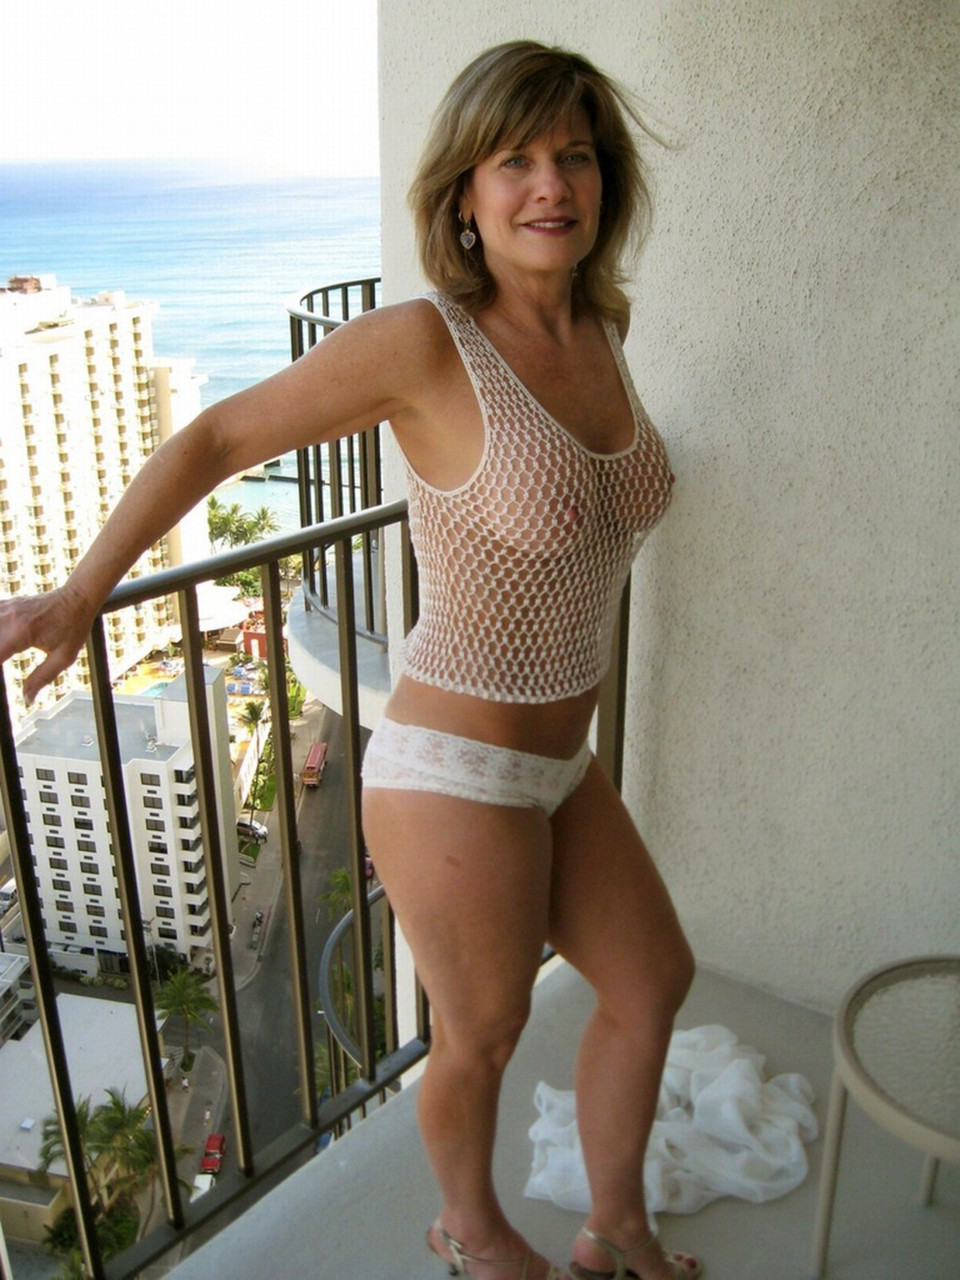 Mature woman see through top